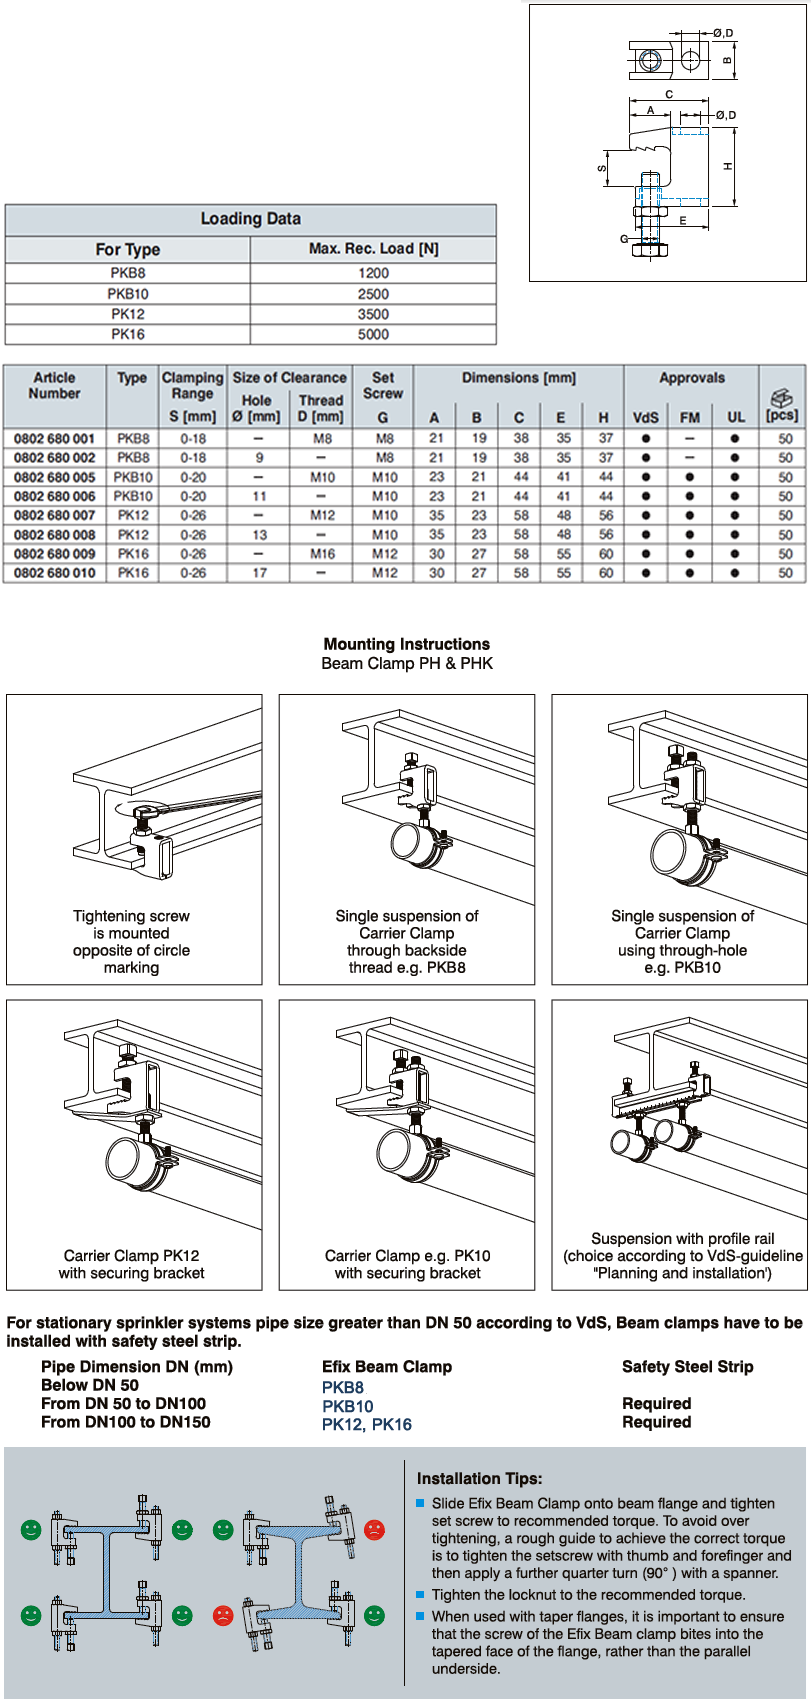 Daten Mounting Instructions Beam Clamp